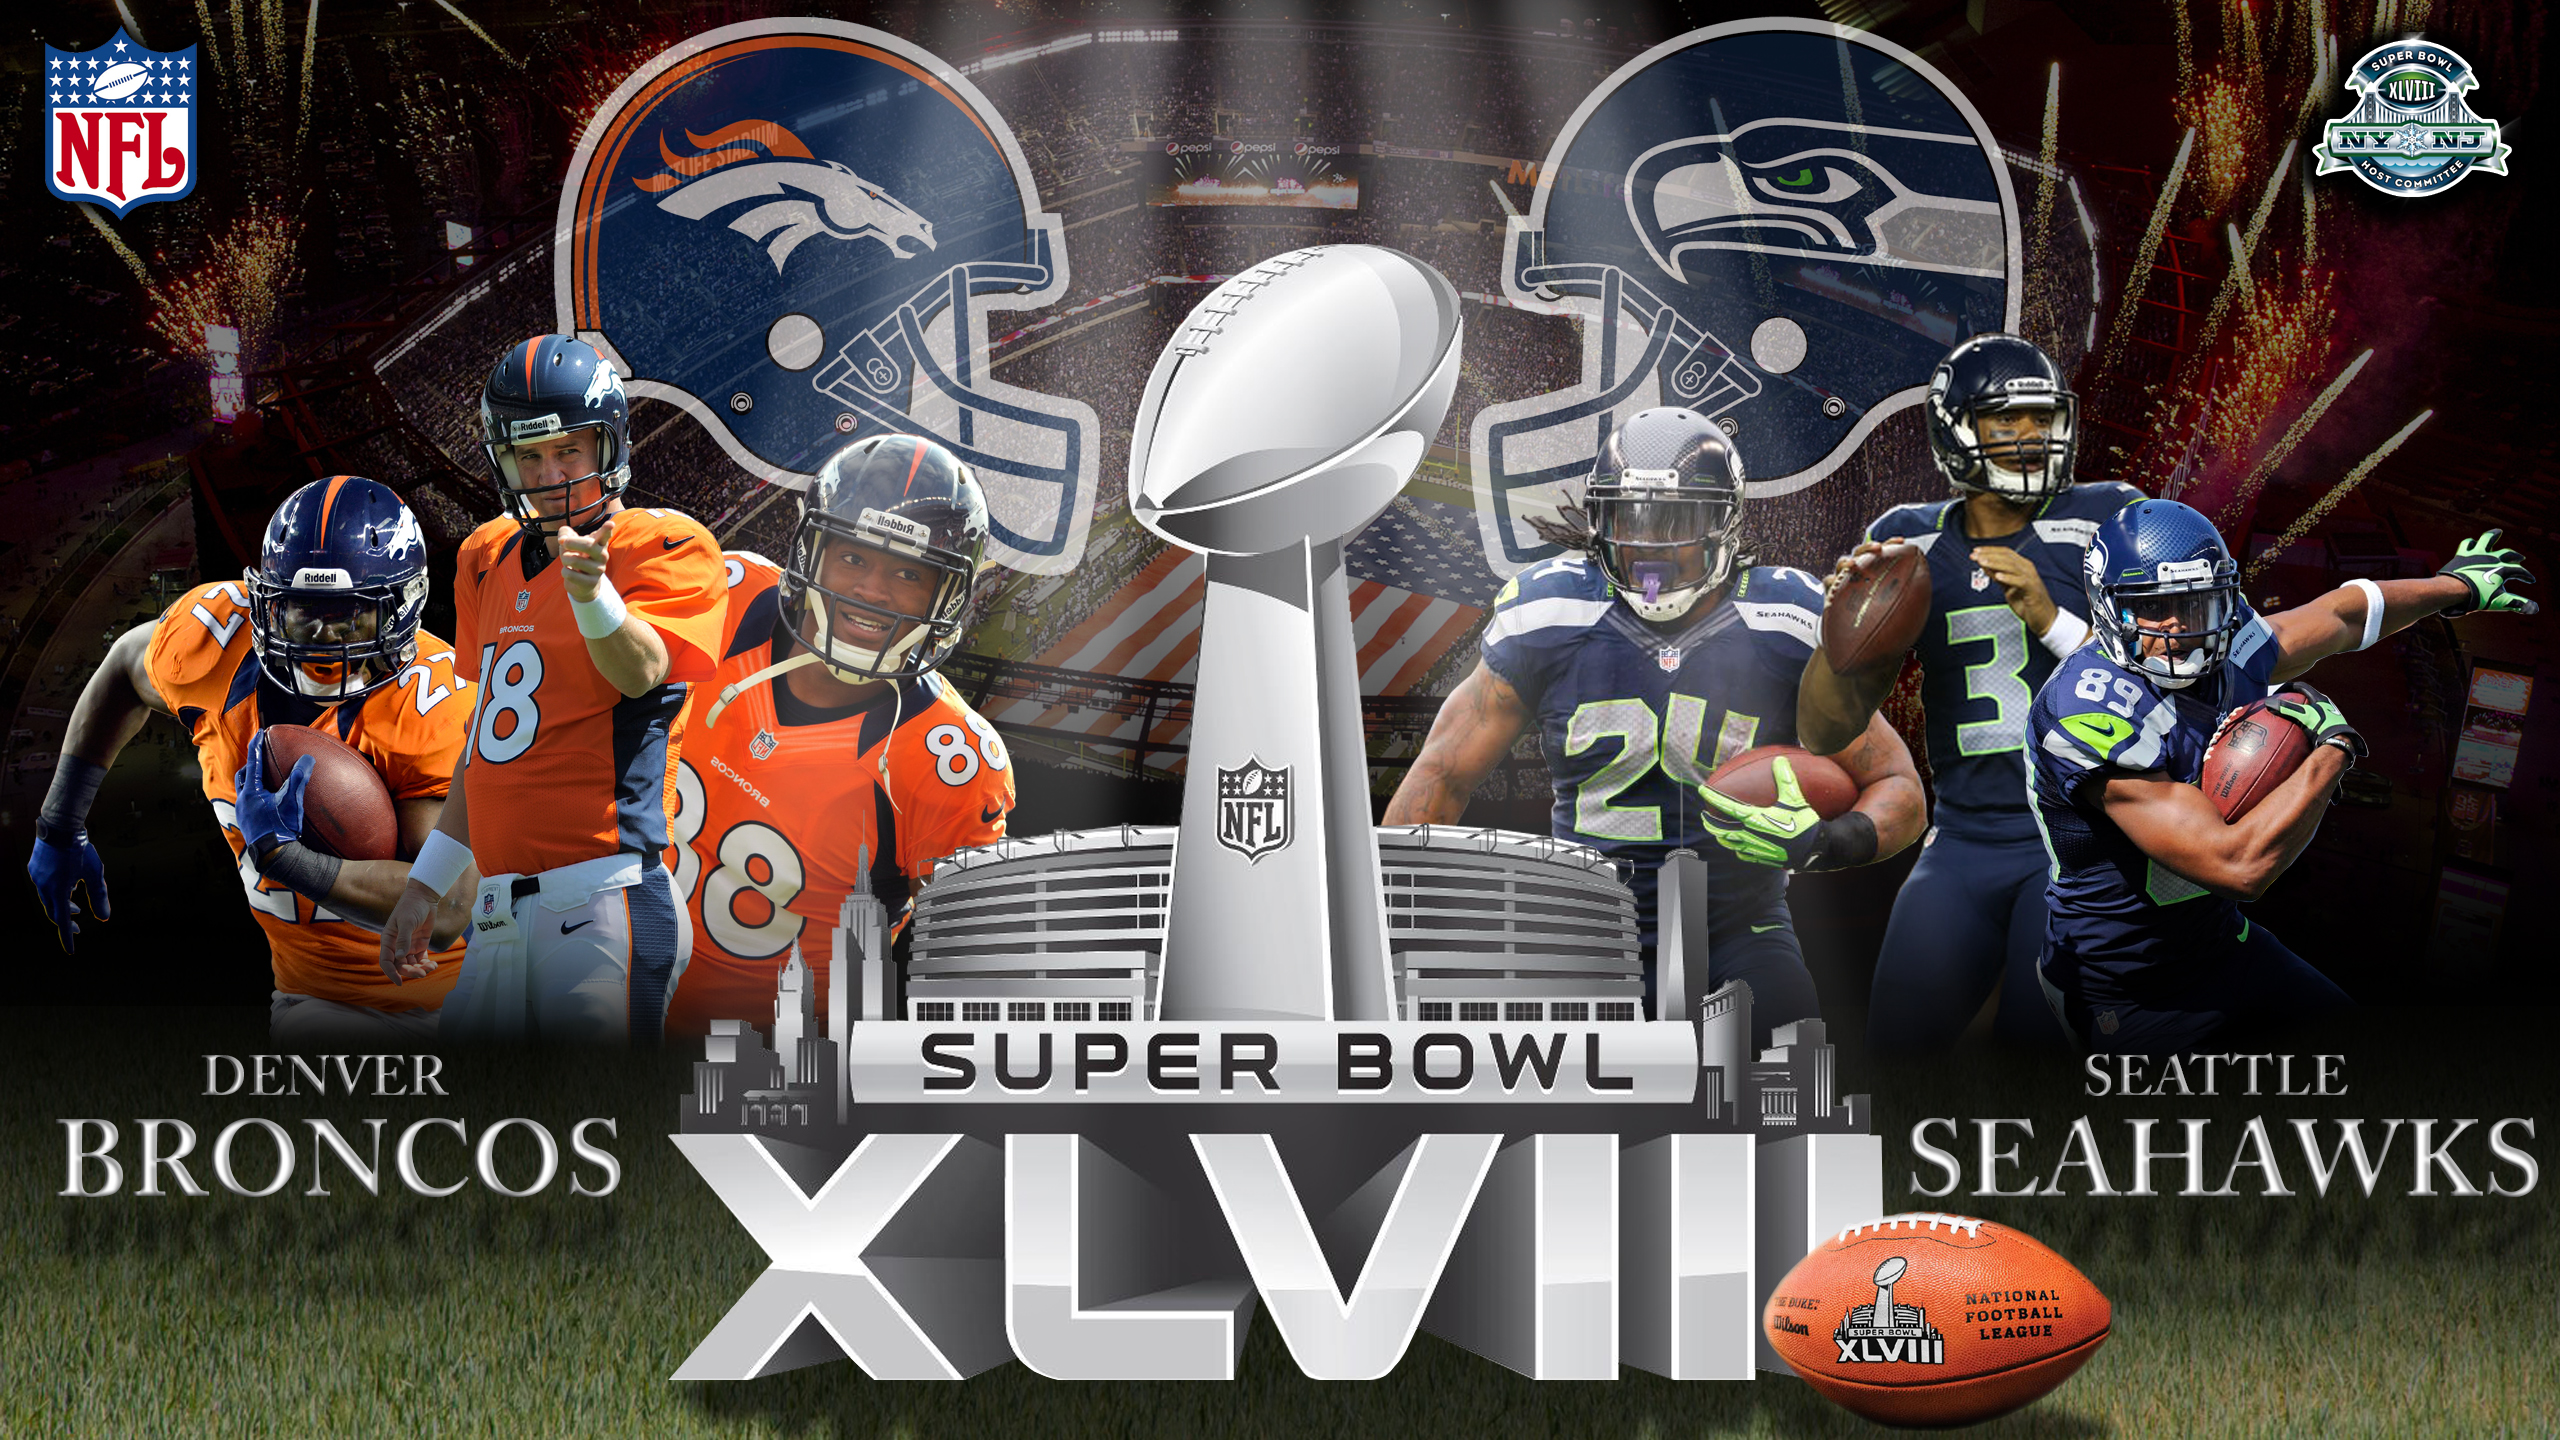 Broncos Super Bowl Wallpaper